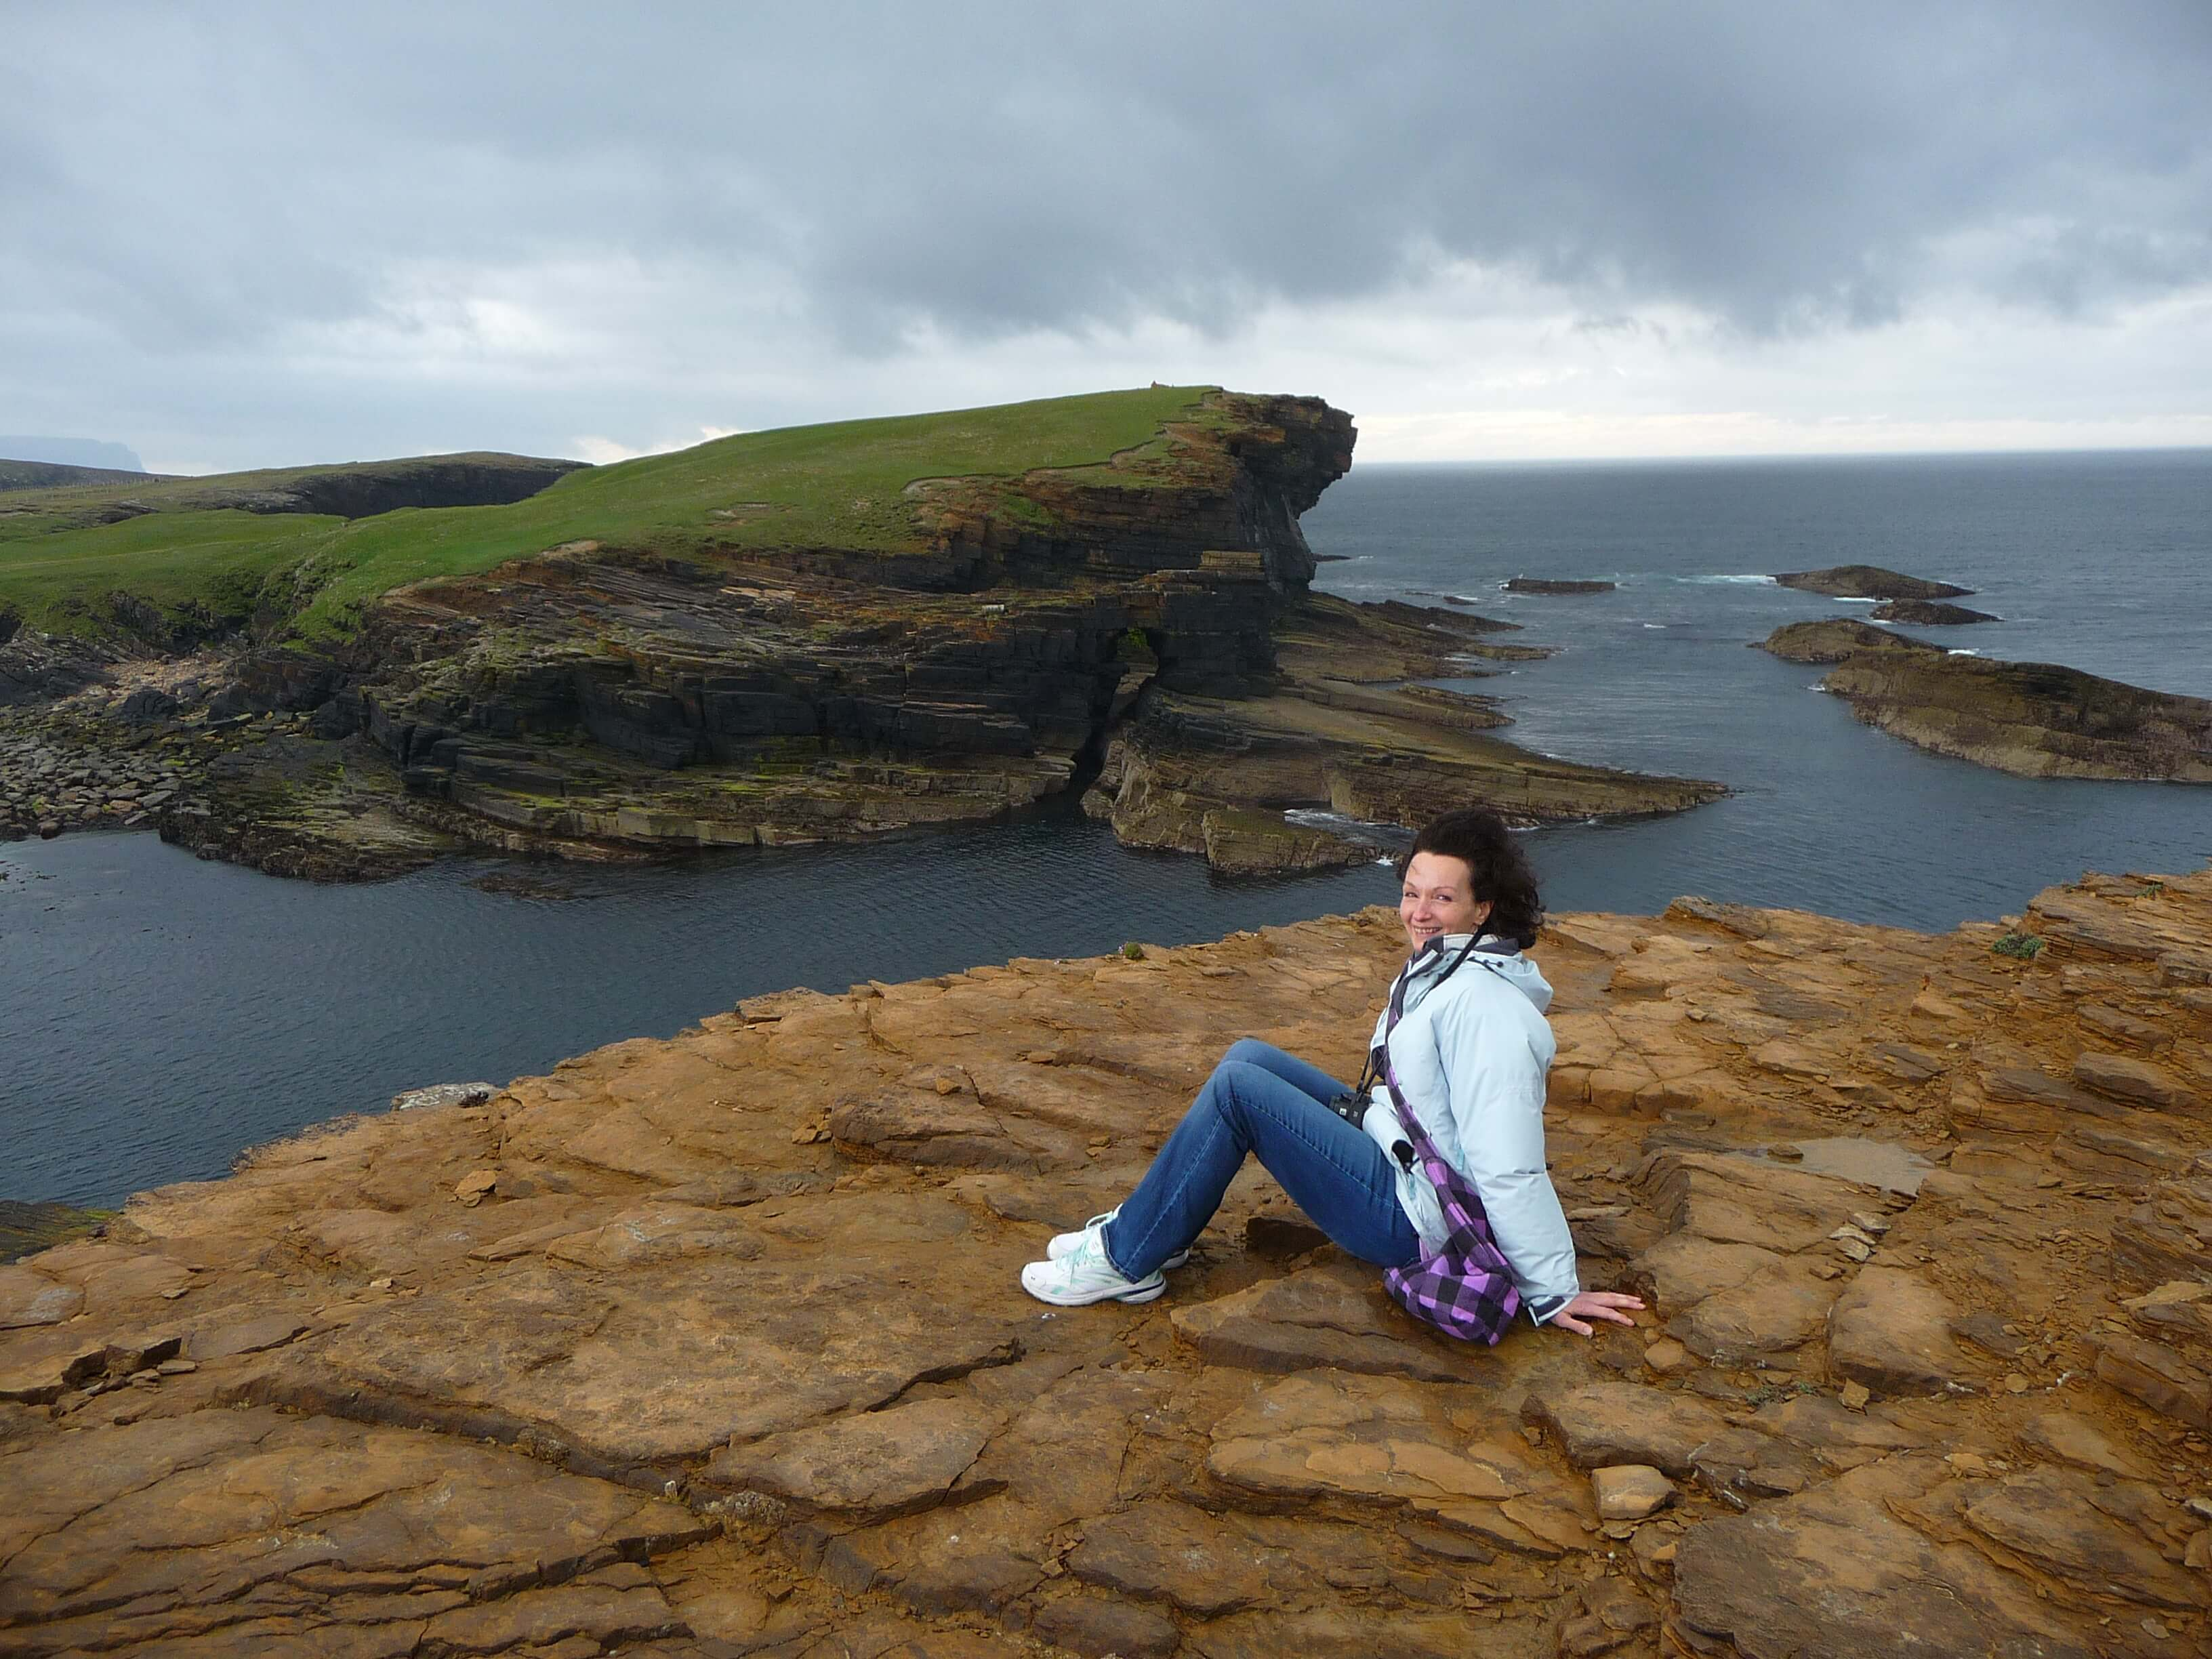 American expat Rhonda Muir of www.Orkneyology.com in the Orkney Islands, Scotland, UK.